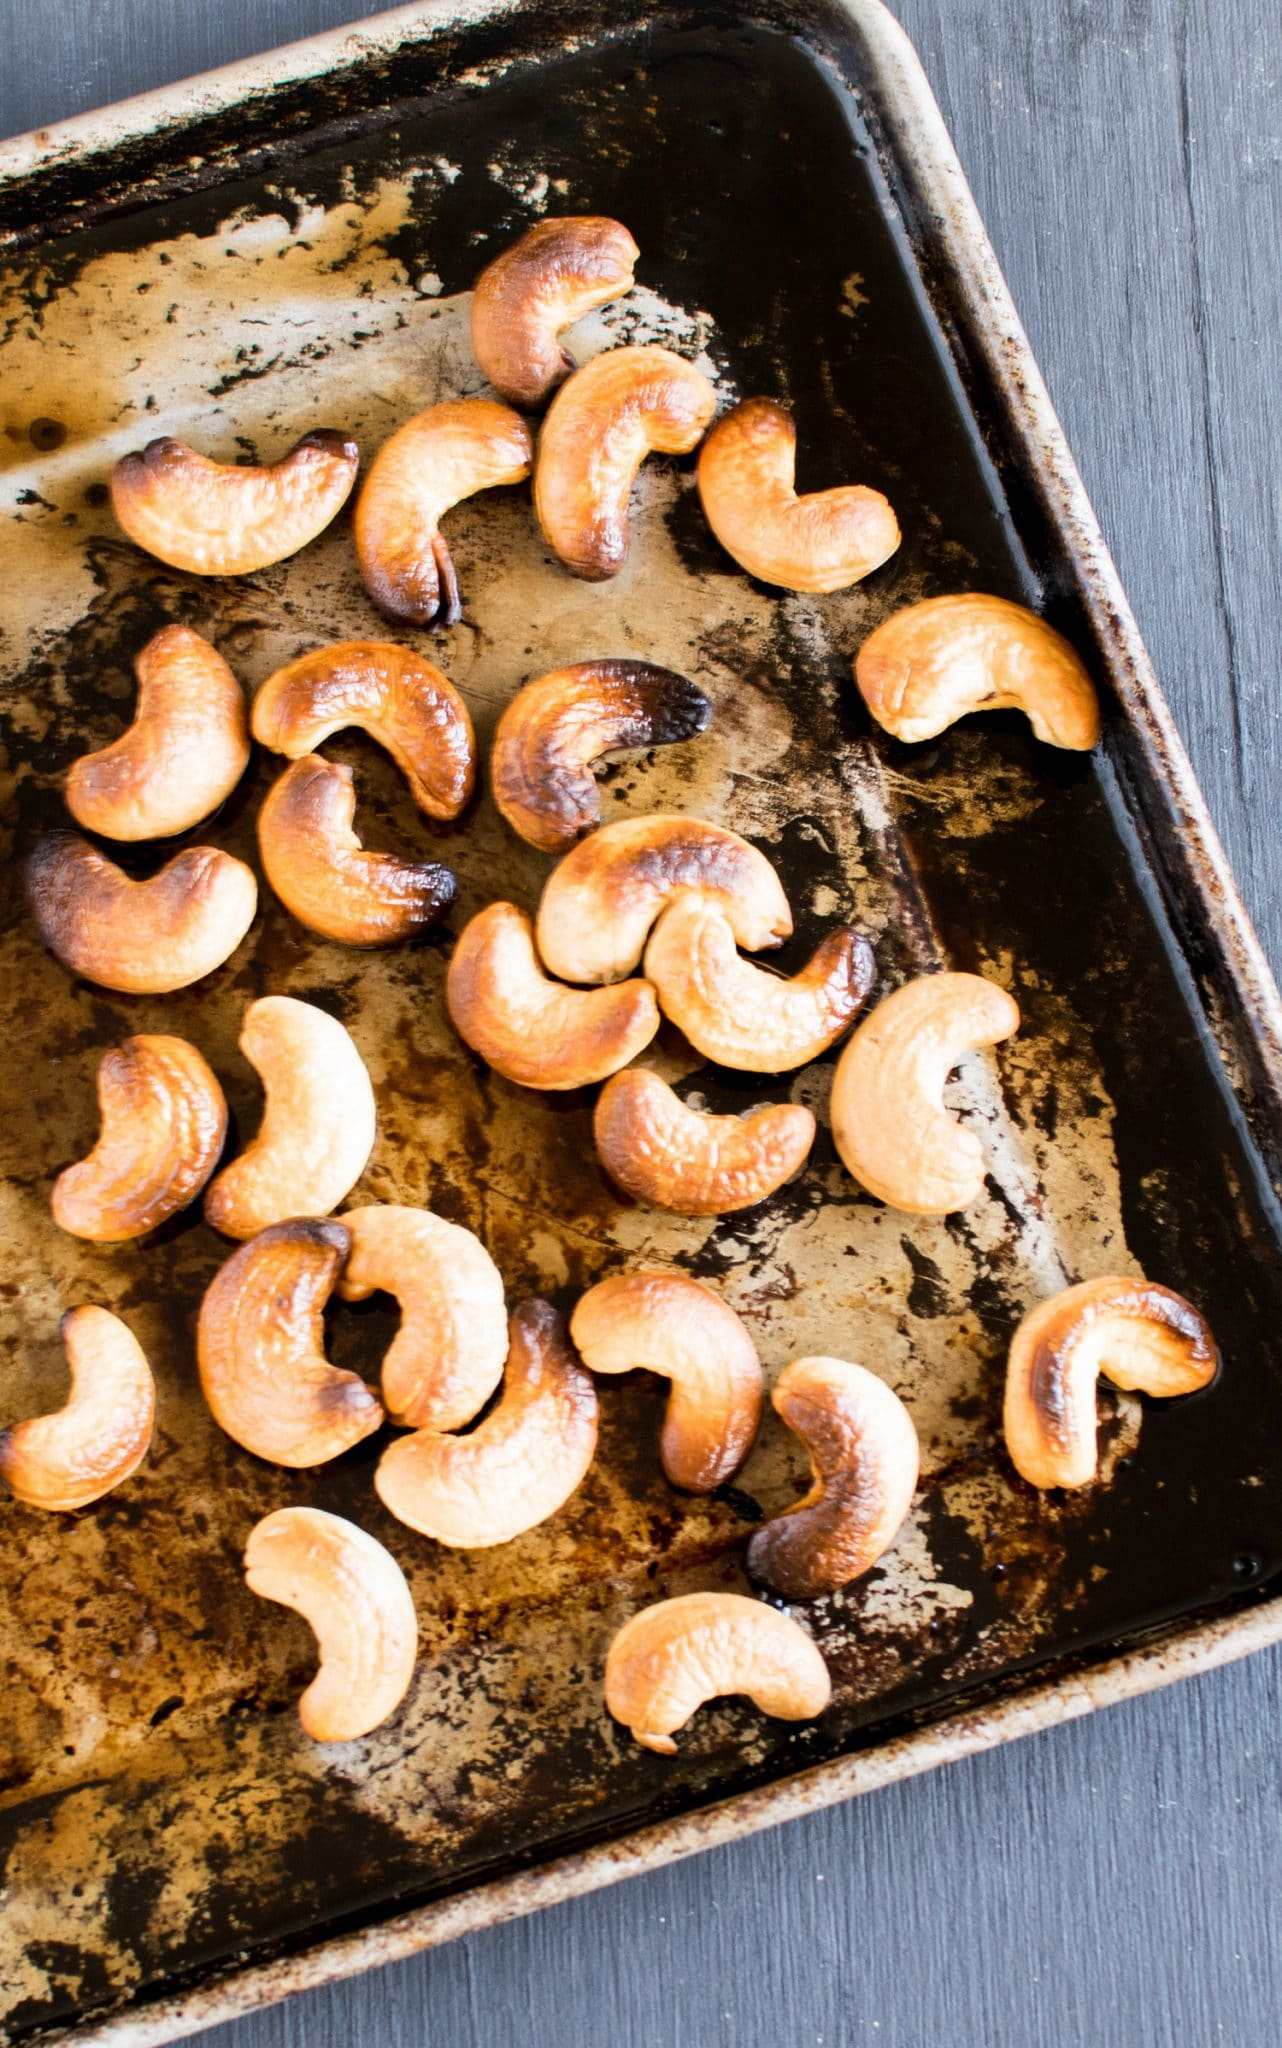 Roasted cashew nuts are shown on the baking tray